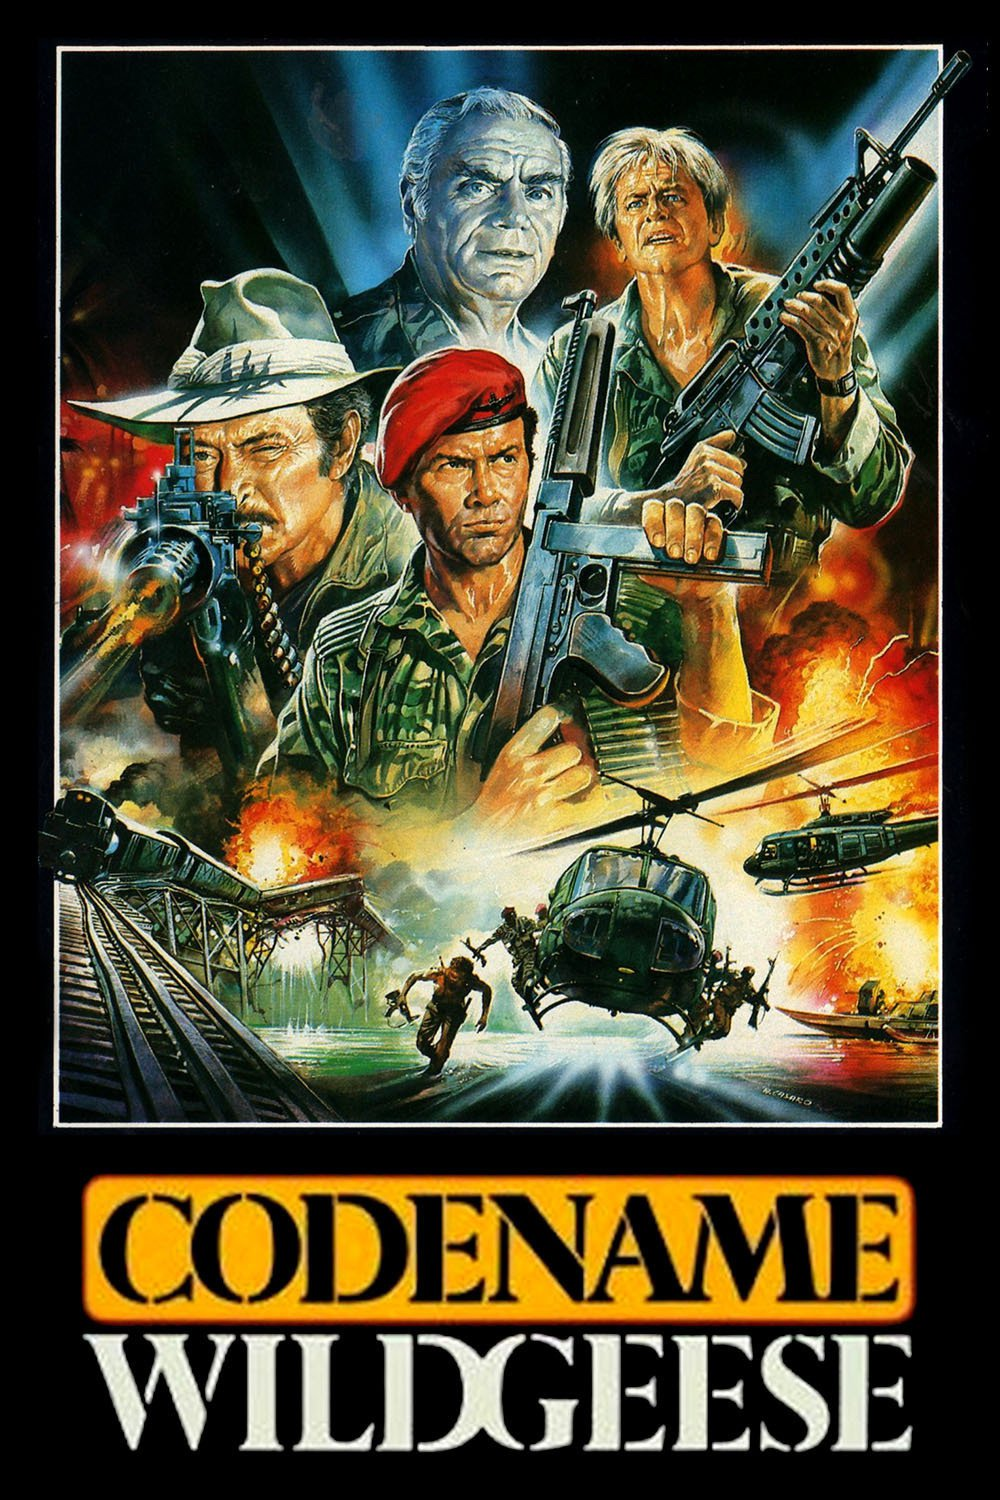 Codename - Wild Geese (1984)